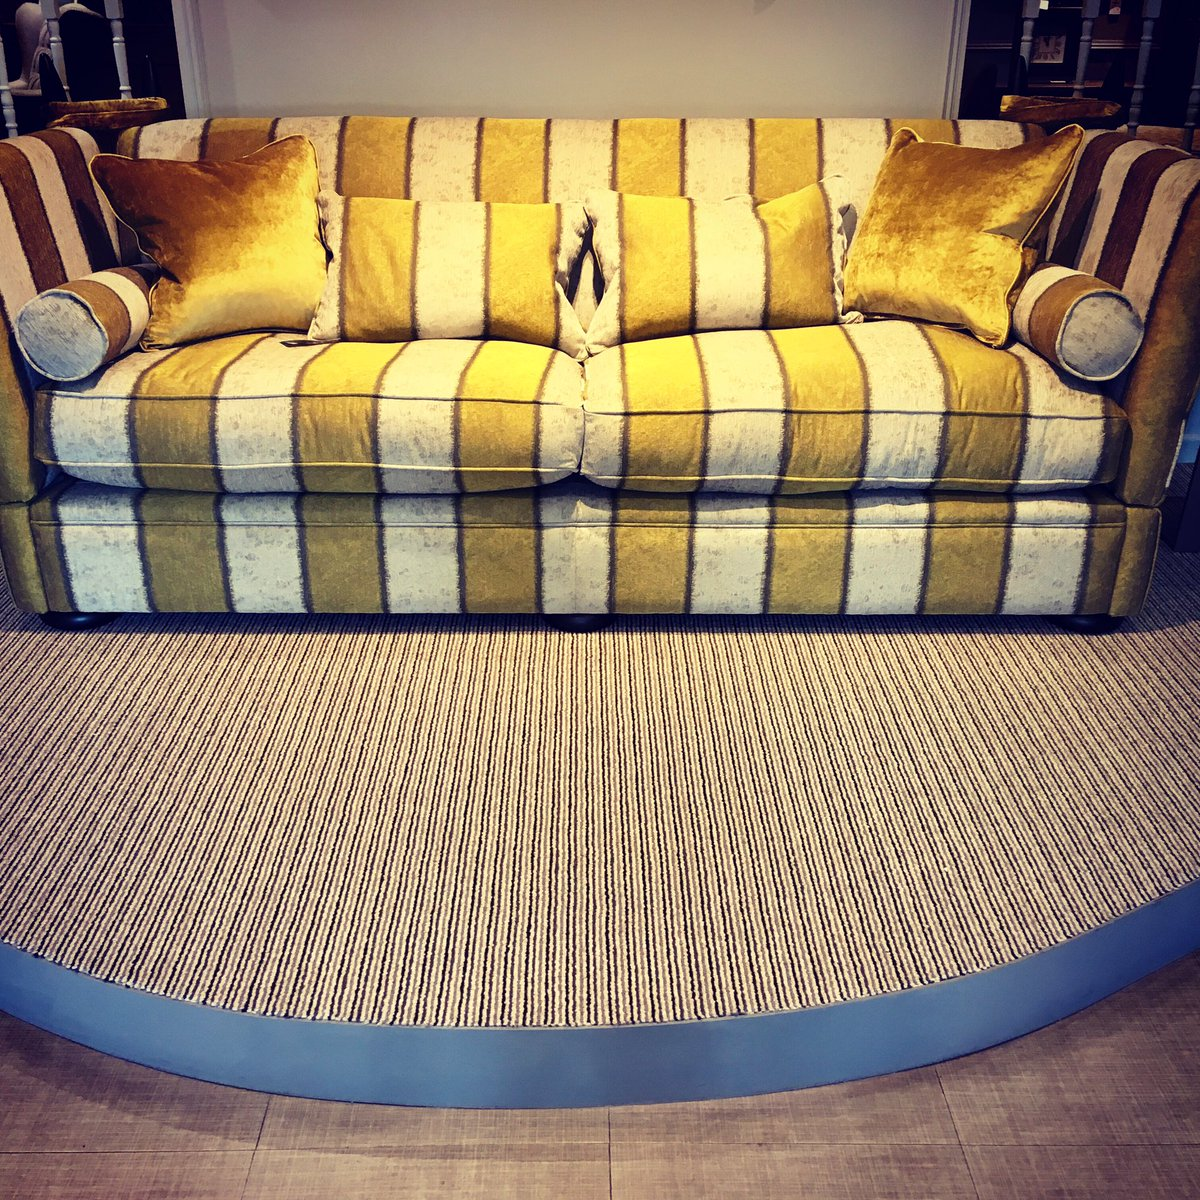 Stunning Carnaby Street Stripe Carpet Made By Riviera Home Uk And Featured At Hatfields Ltd Colchester Essex Decor Interiorpictwitter